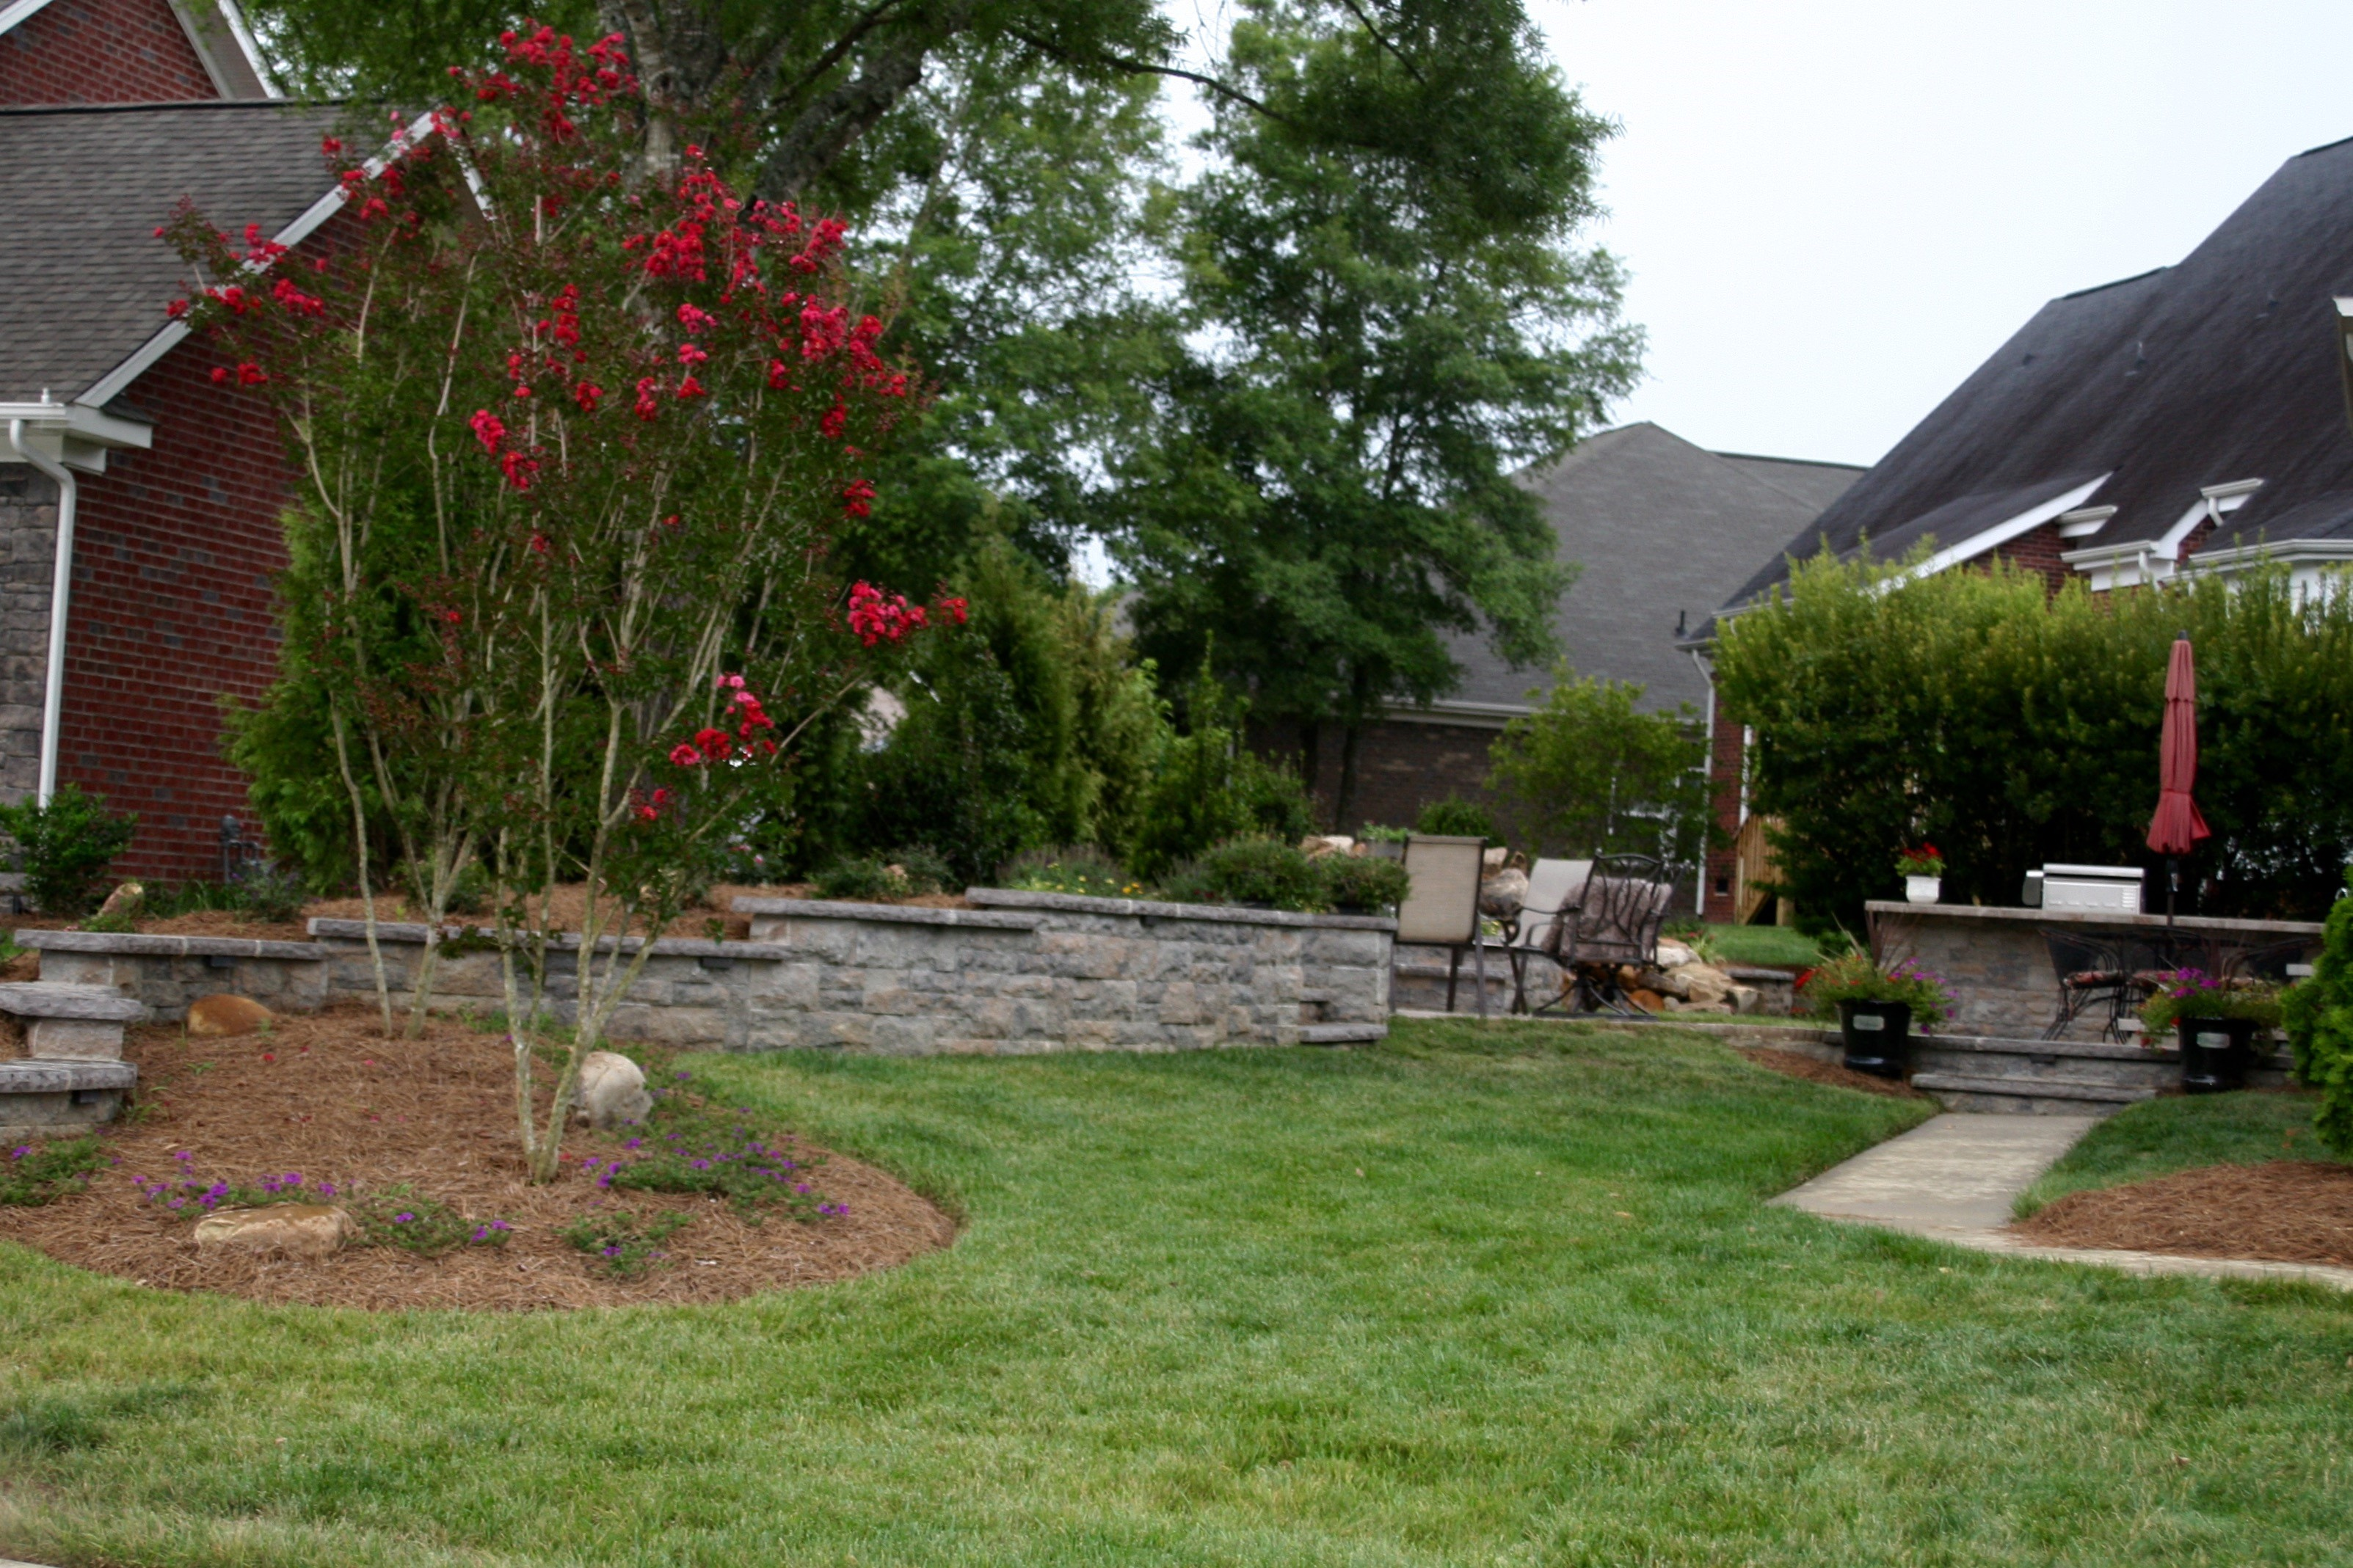 Top landscapers in charlotte nc - Top Landscapers In Charlotte Nc 6